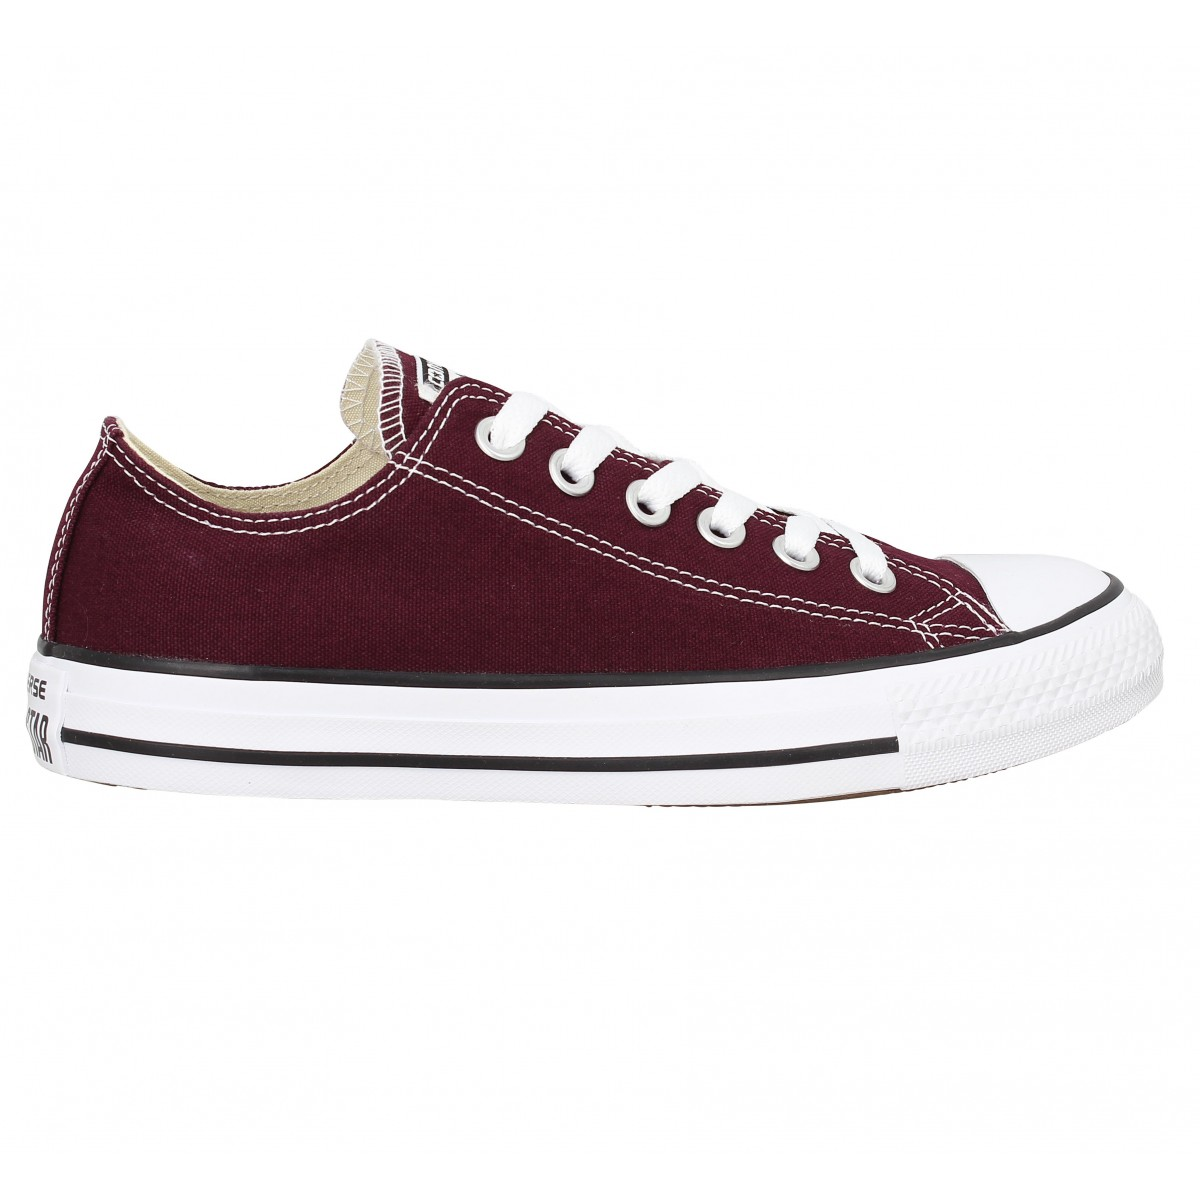 converse chuck taylor all star toile femme sangria femme fanny chaussures. Black Bedroom Furniture Sets. Home Design Ideas